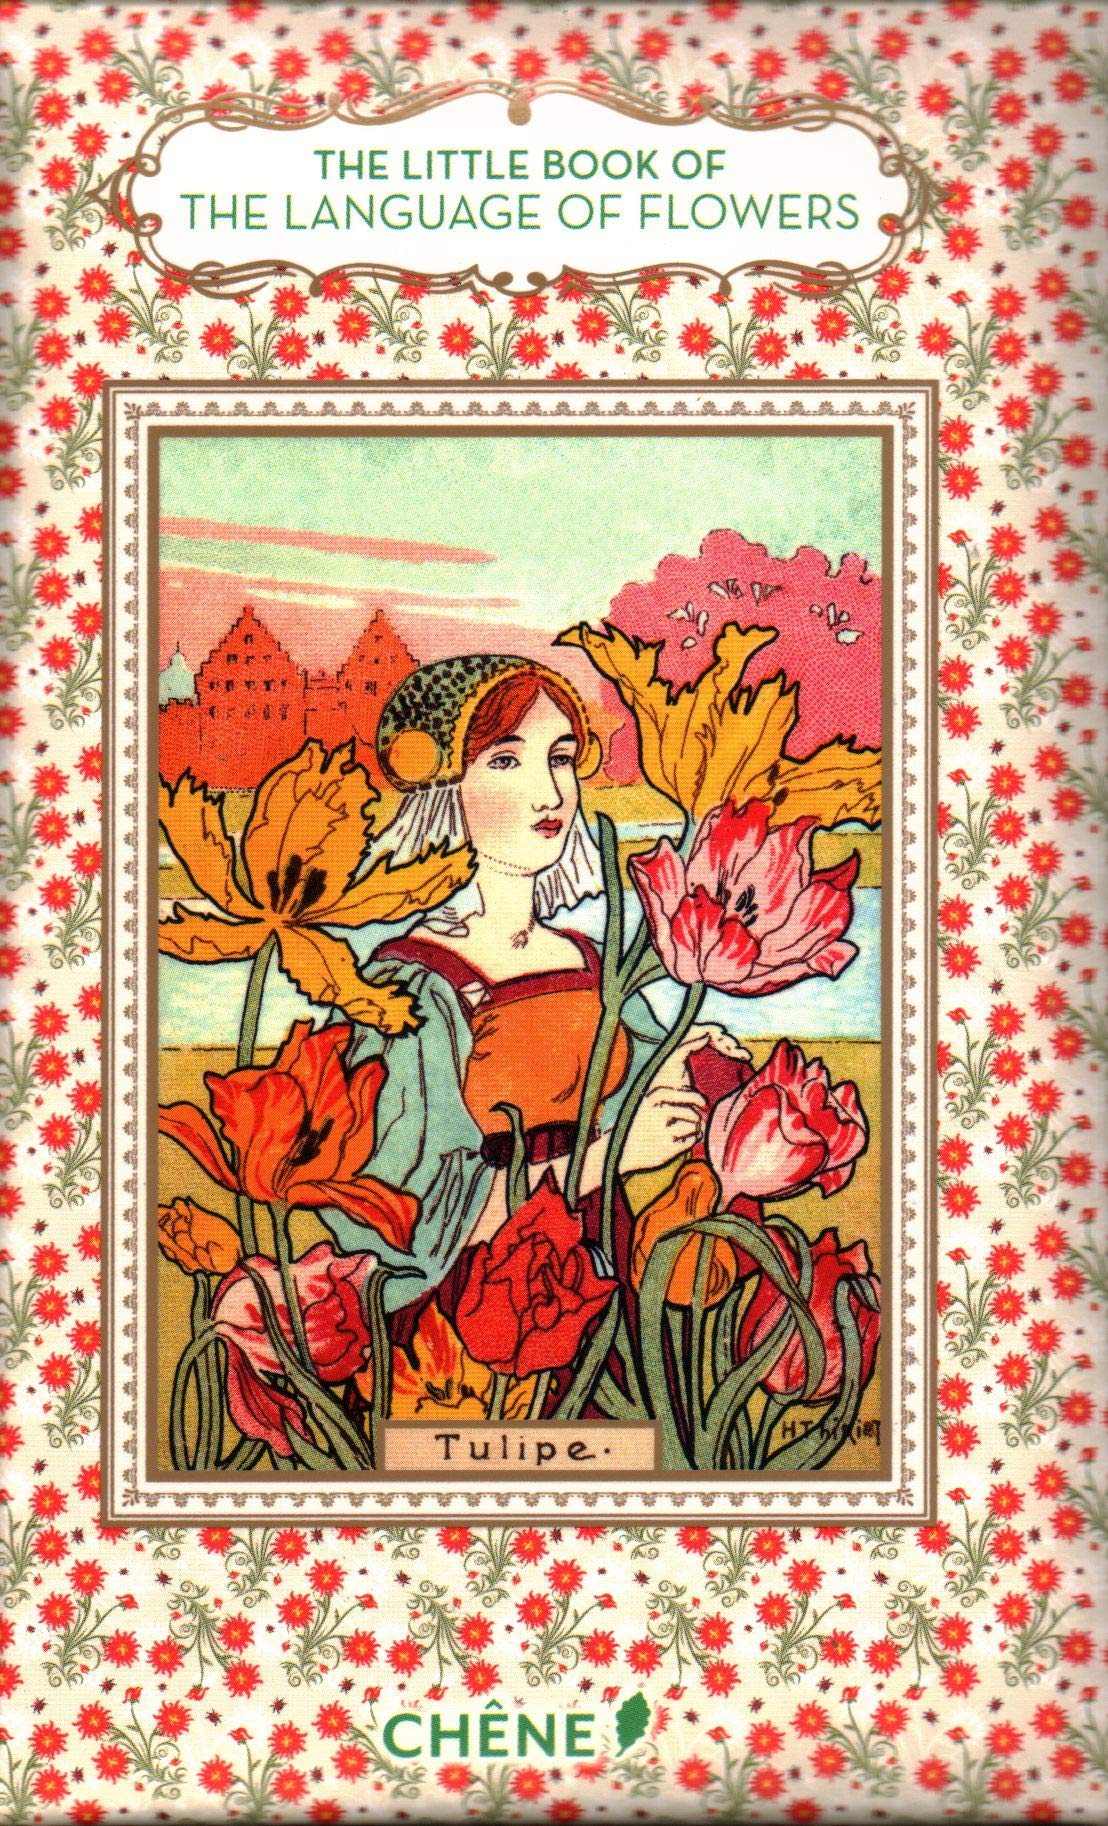 The Little Book of the Language of Flowers by Hachette Livre Editions Du Chene